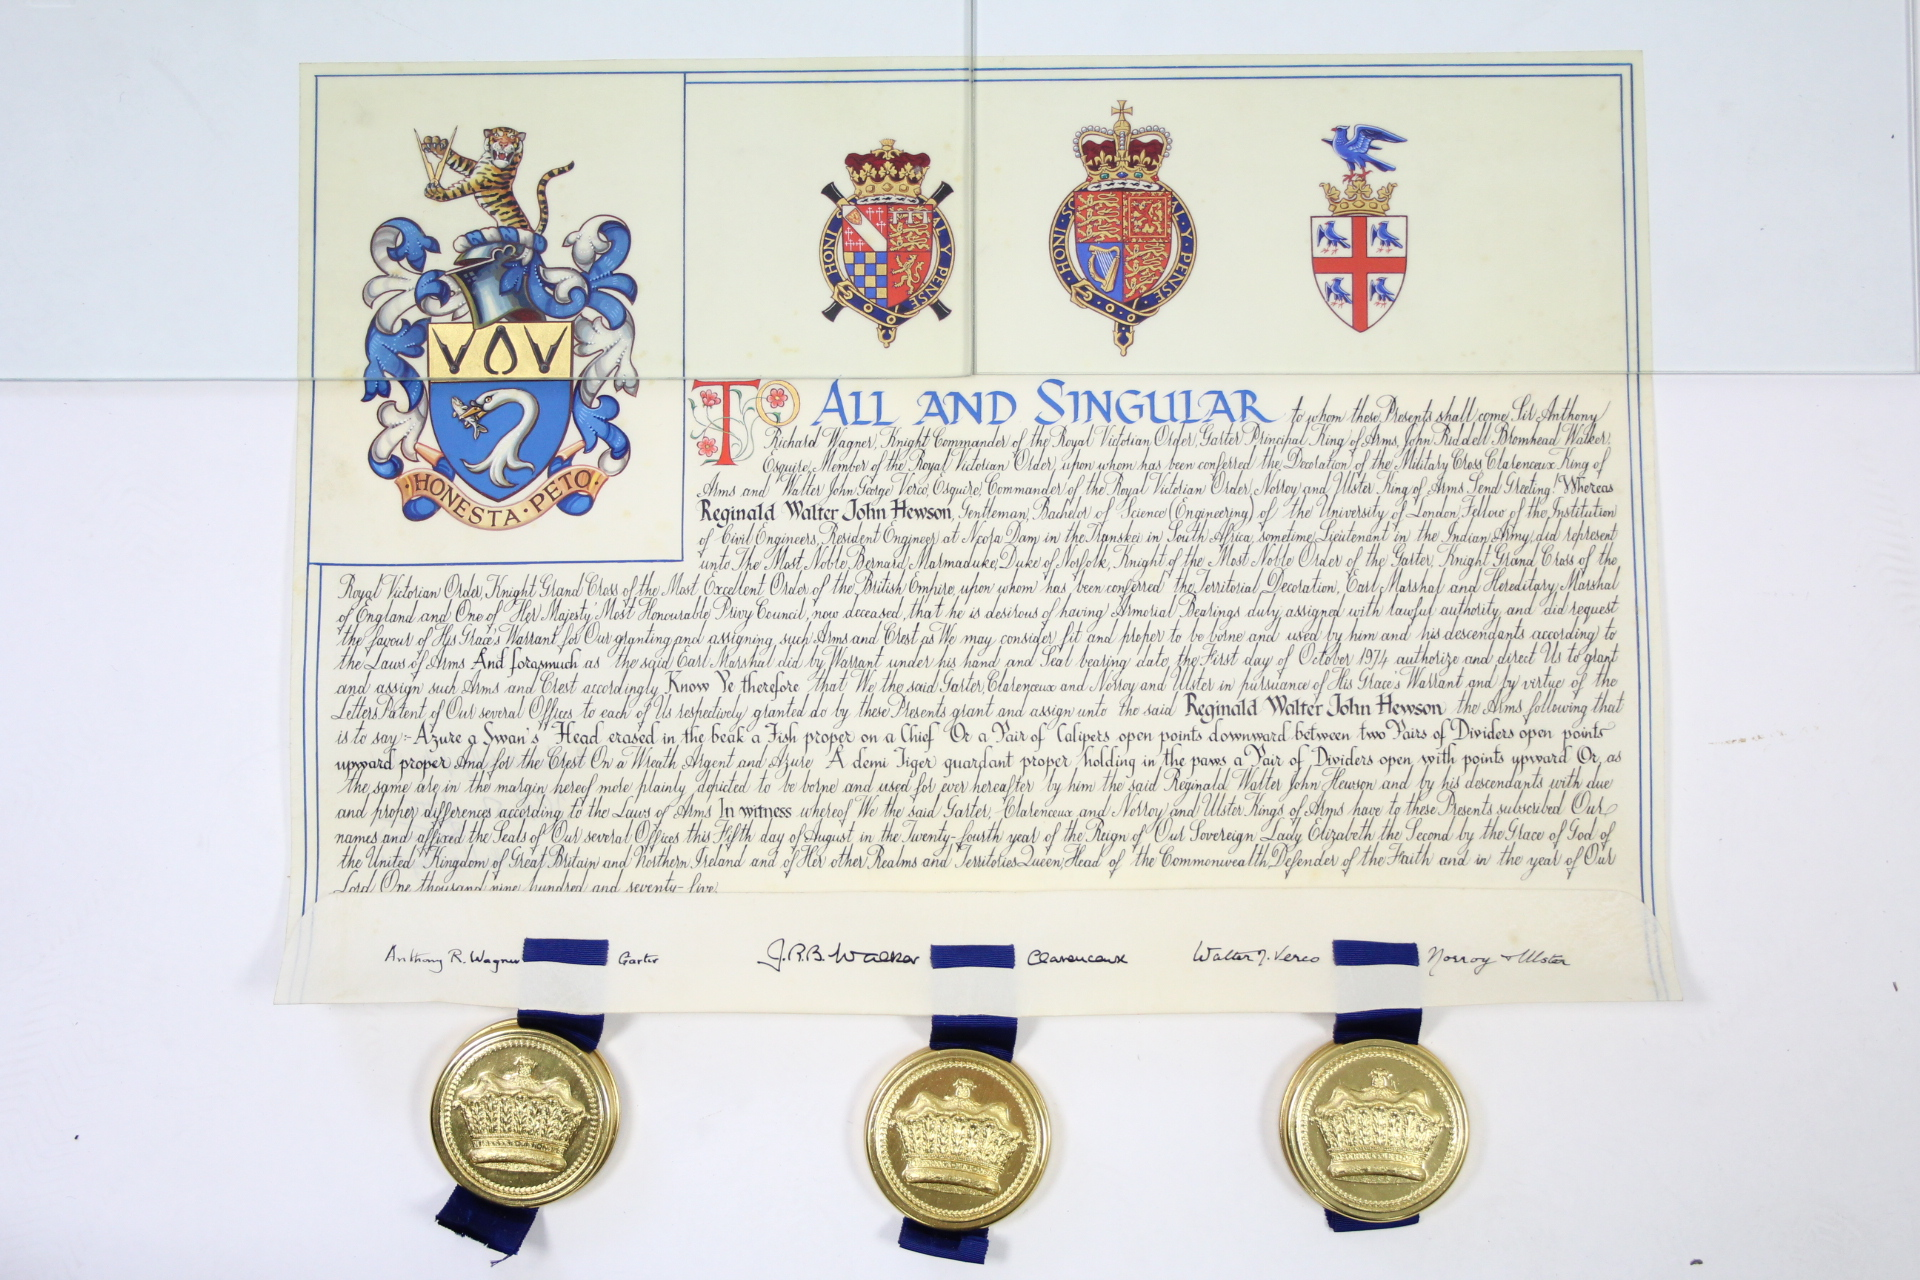 Lot 88A - A GRANT OF ARMS on parchment scroll, illustrating the Armorial Bearing granted to Reginald Walter